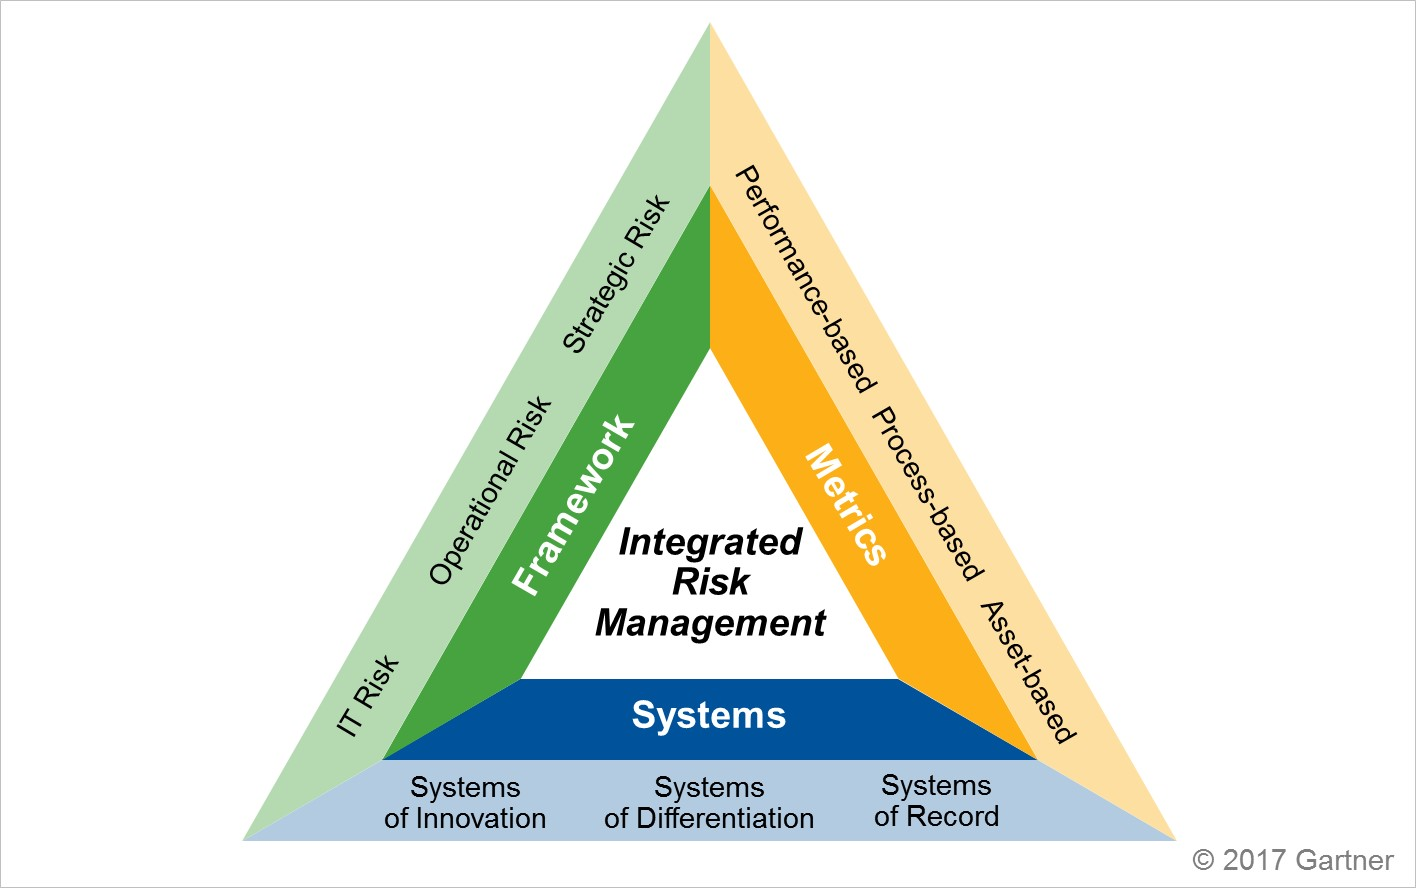 Nist Cybersecurity Framework Supports Use Of Irm